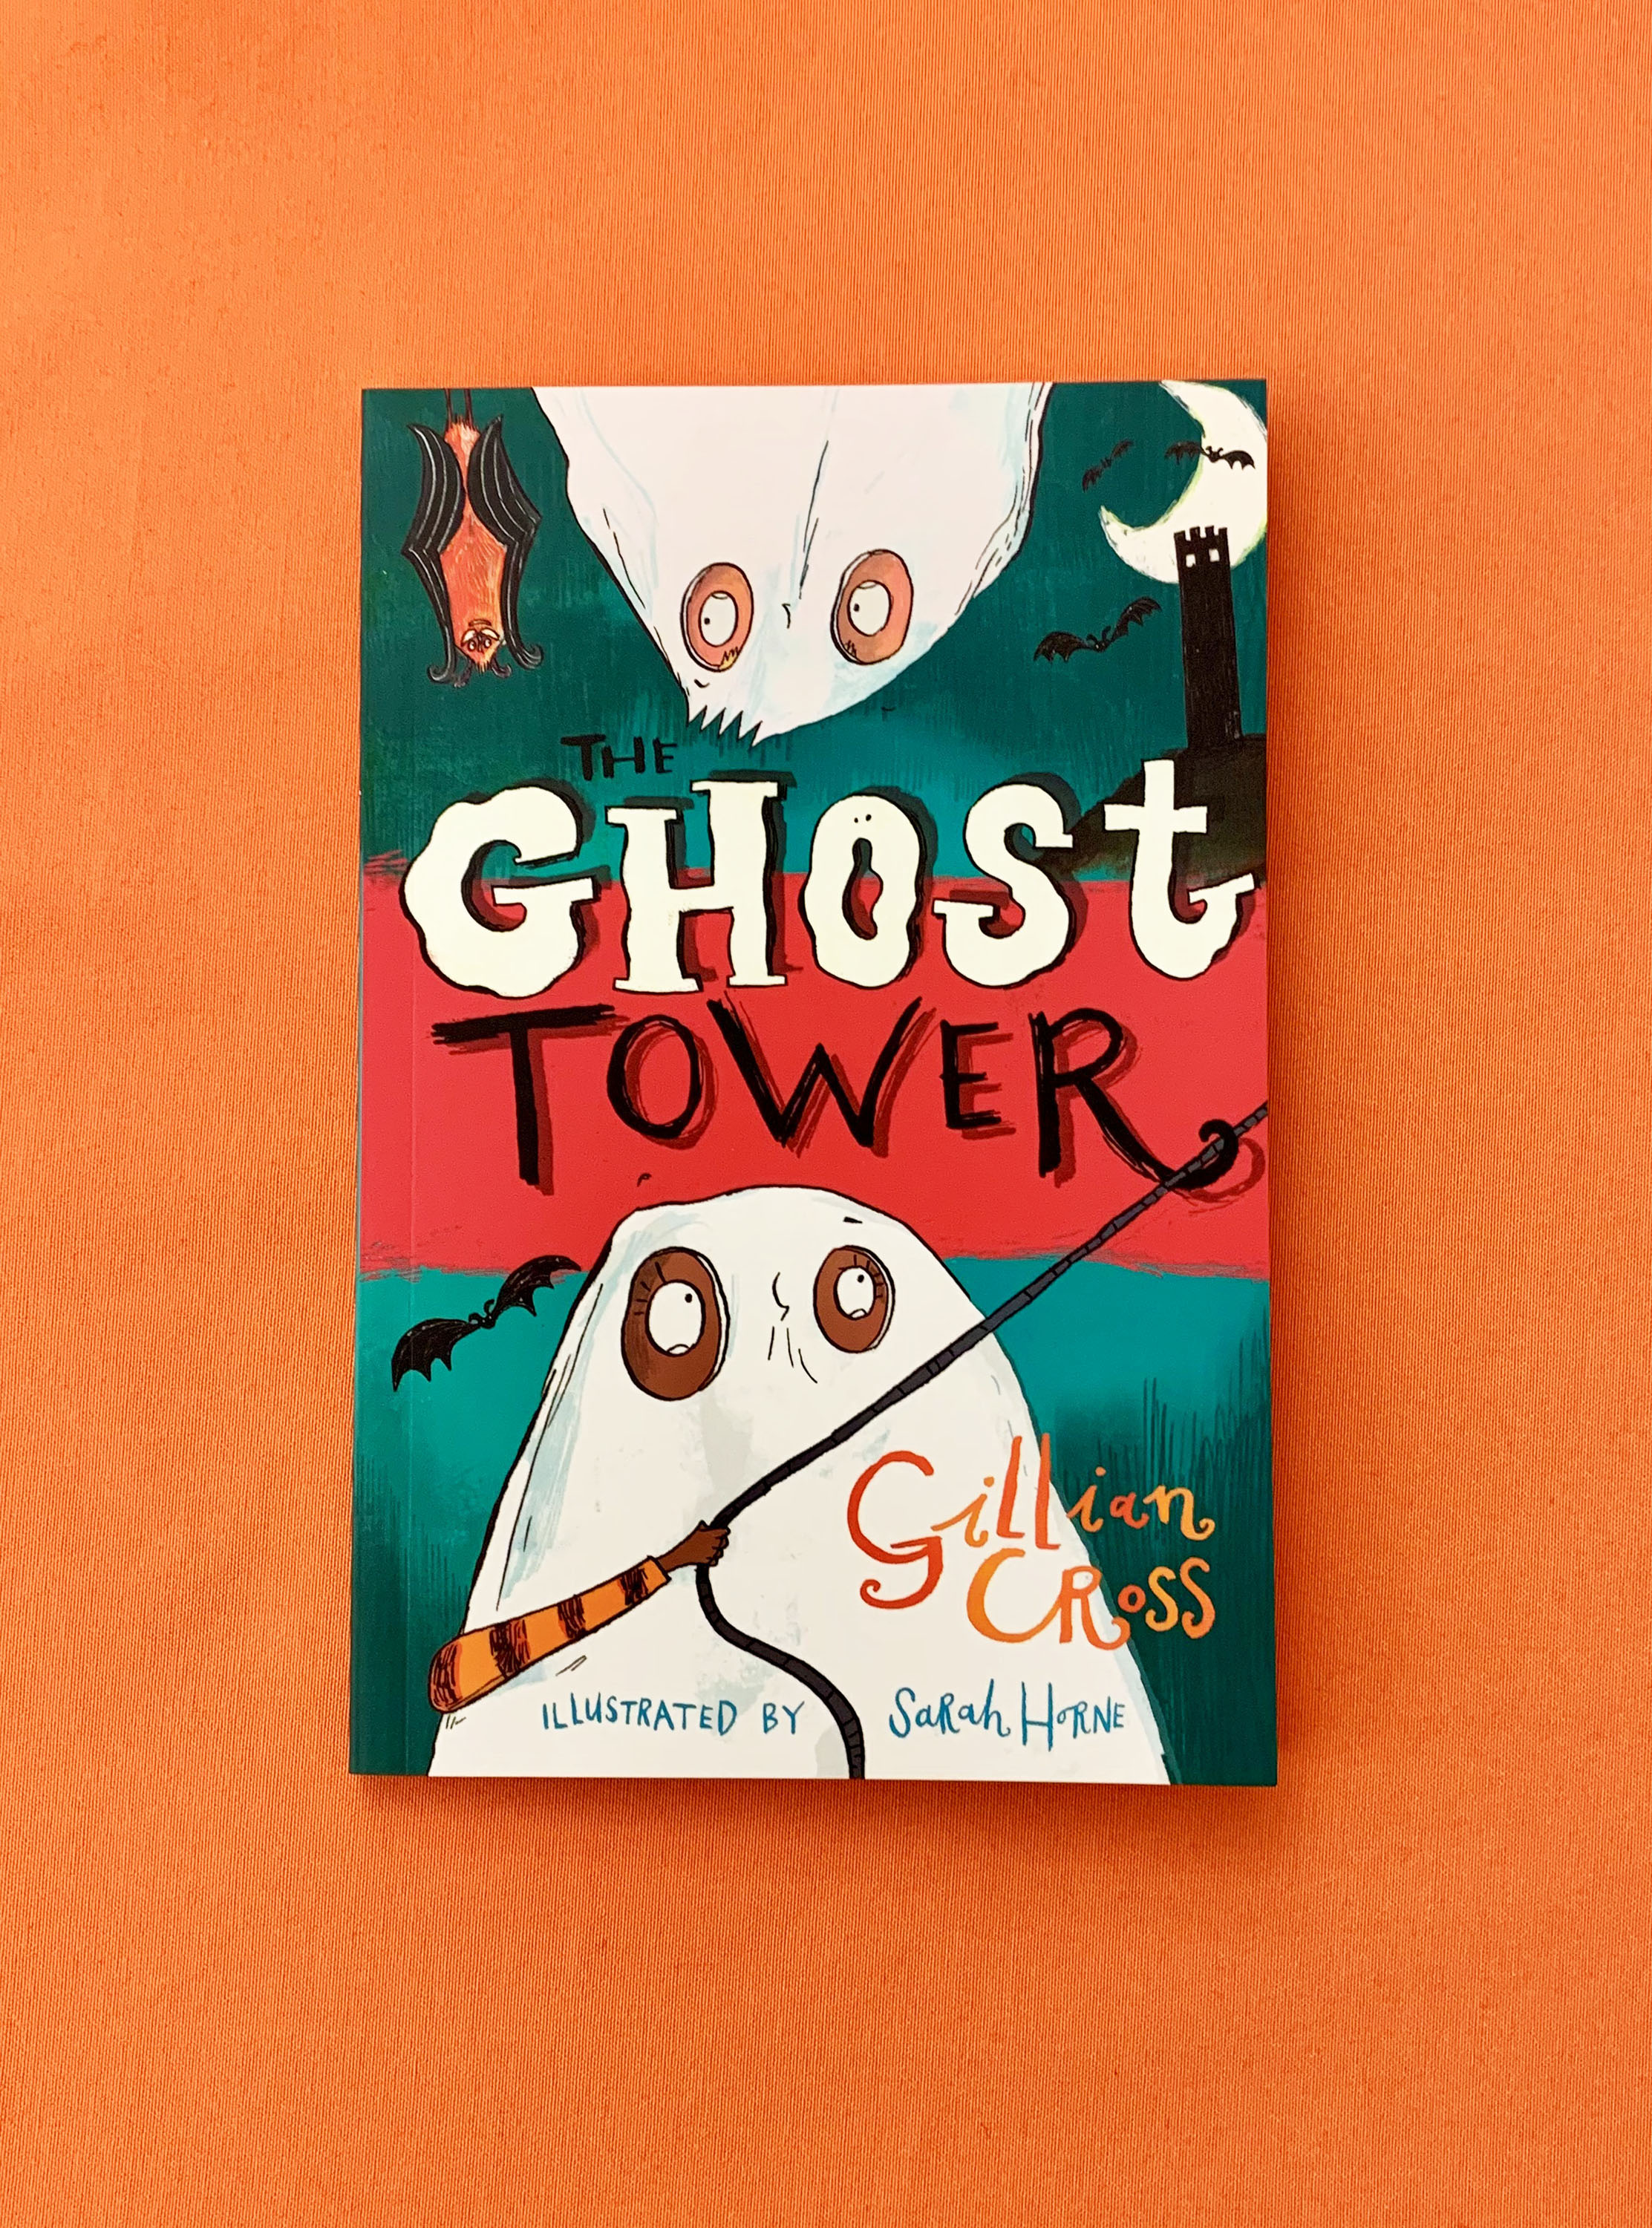 The book The Ghost Tower lying on an orange table